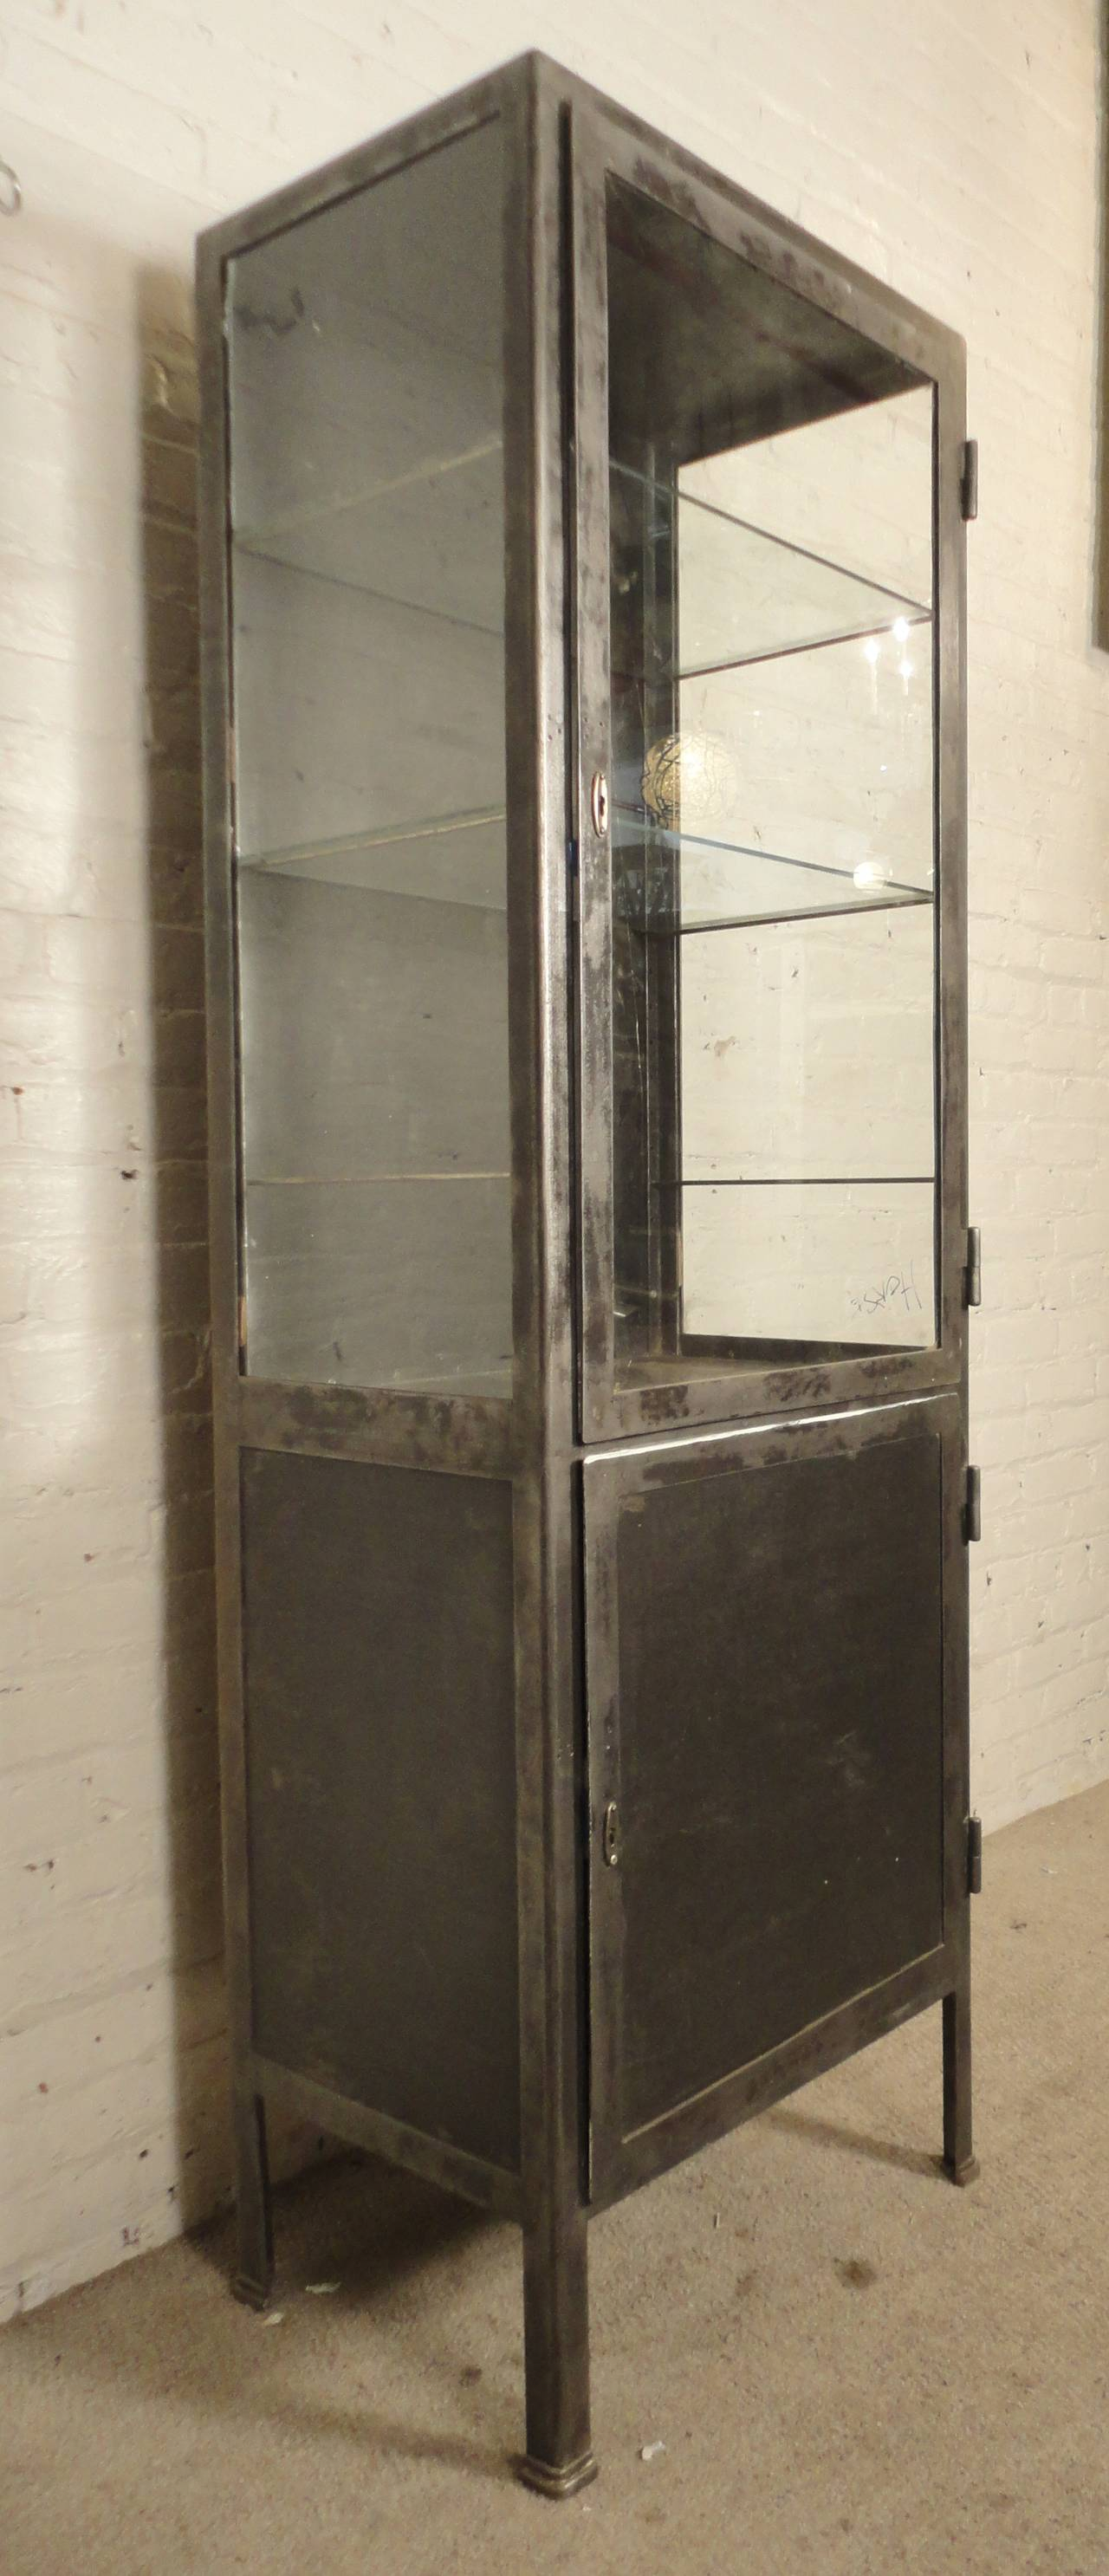 Bon Tall Industrial Metal Display Cabinet In Distressed Condition For Sale In  Brooklyn, NY